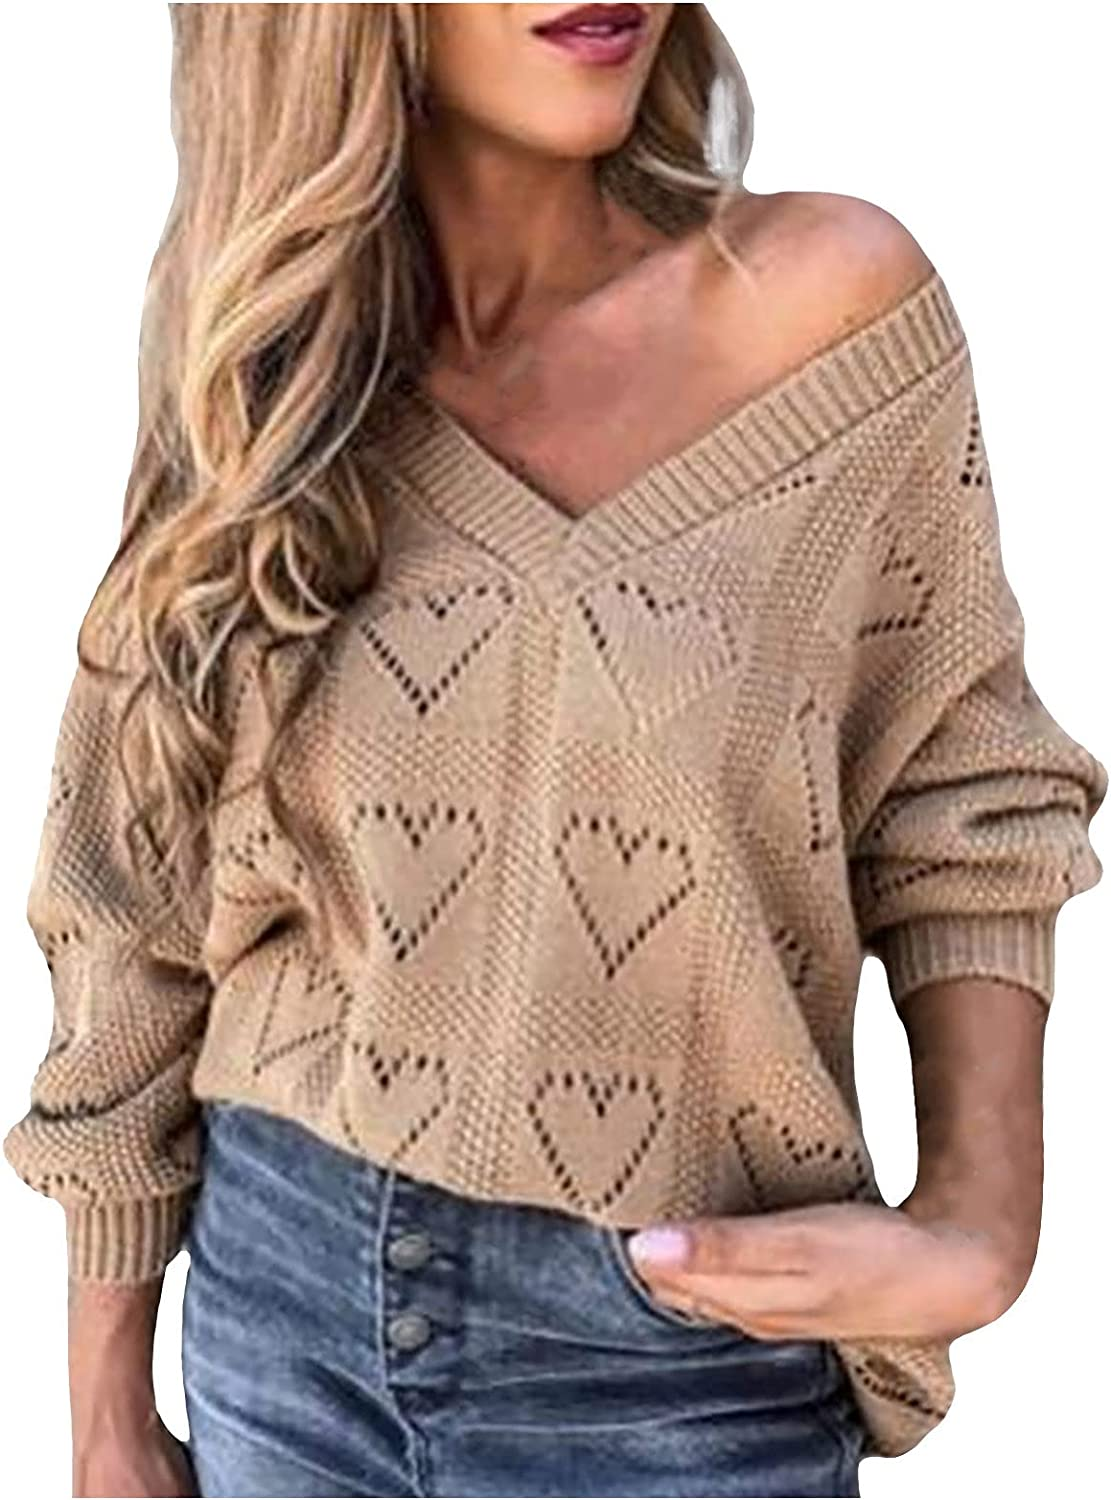 UOFOCO Plus Size Sweaters for Women Long Sleeve Tops Hollow V-Neck Casual Pullover Blouse Solid Color Knitted Sweater